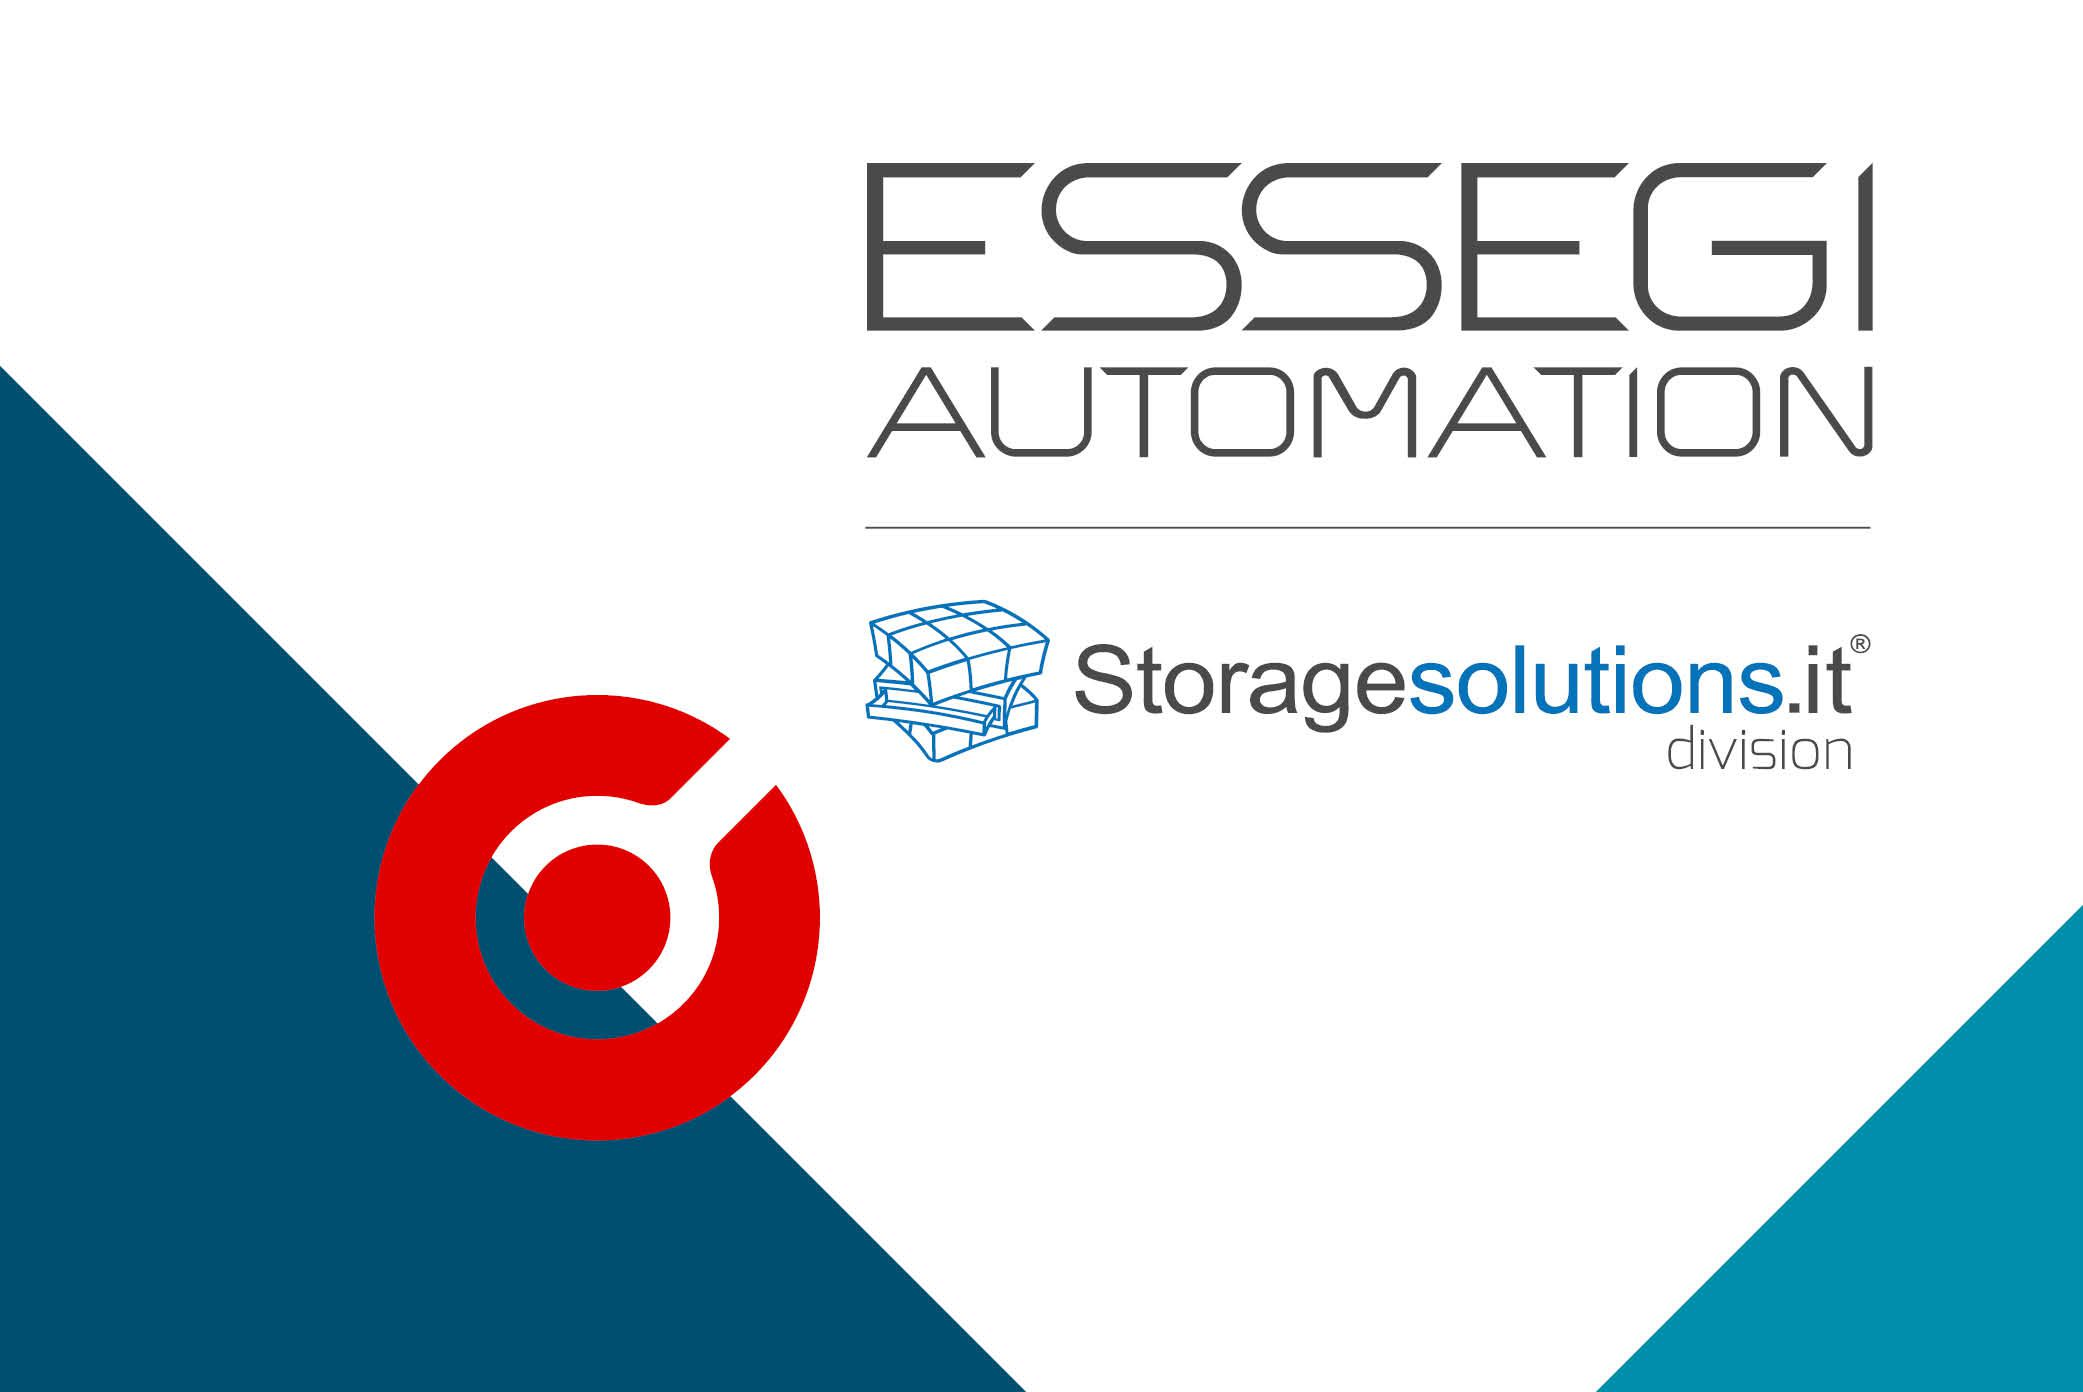 SMD storage is done best with StorageSolutions by Essegi